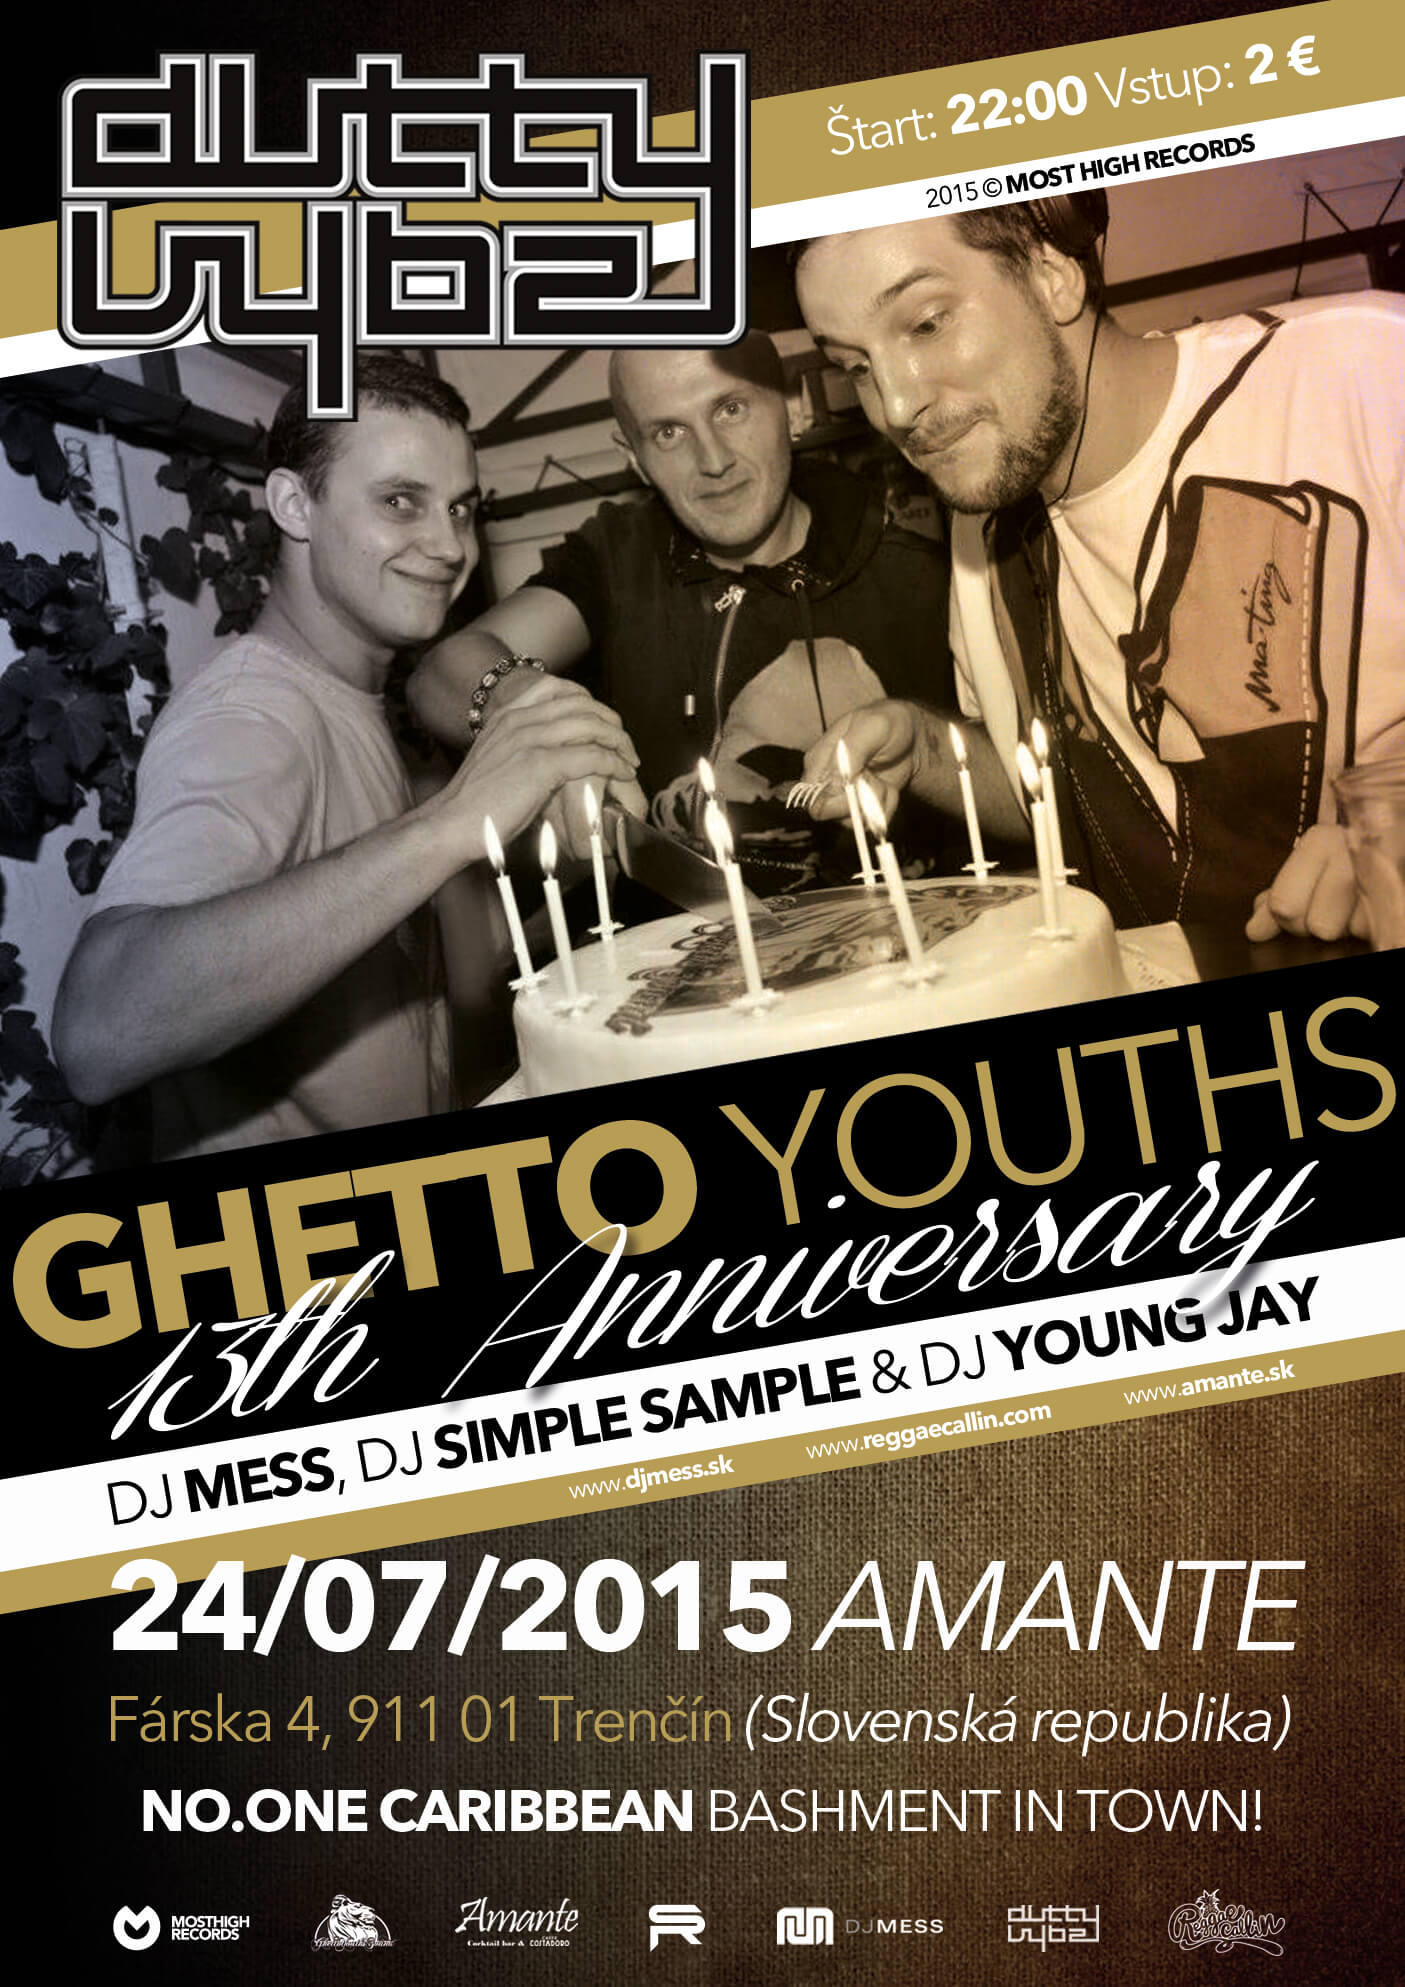 24-07-2015-dutty-vybz-party-ghetto-youths-sound-13th-anniversary